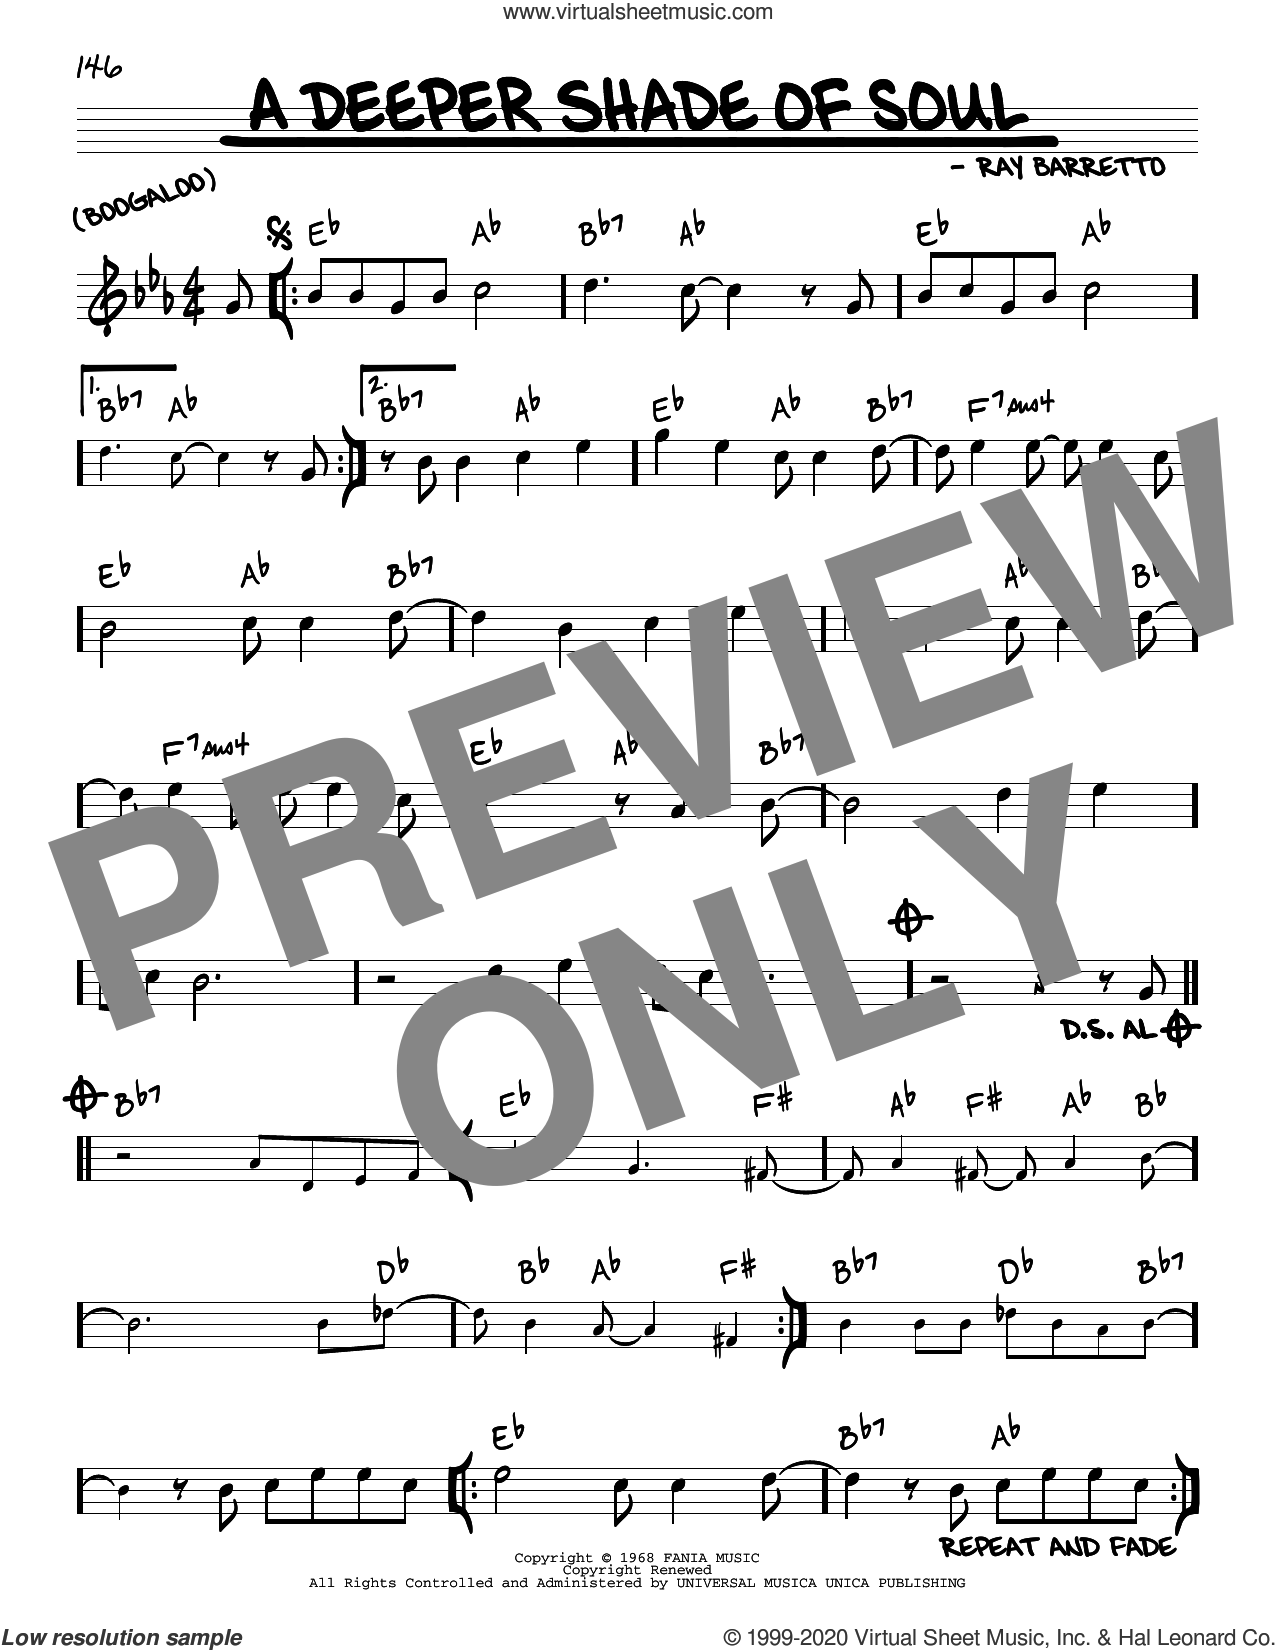 A Deeper Shade Of Soul sheet music for voice and other instruments (real book) by Ray Barretto, intermediate skill level